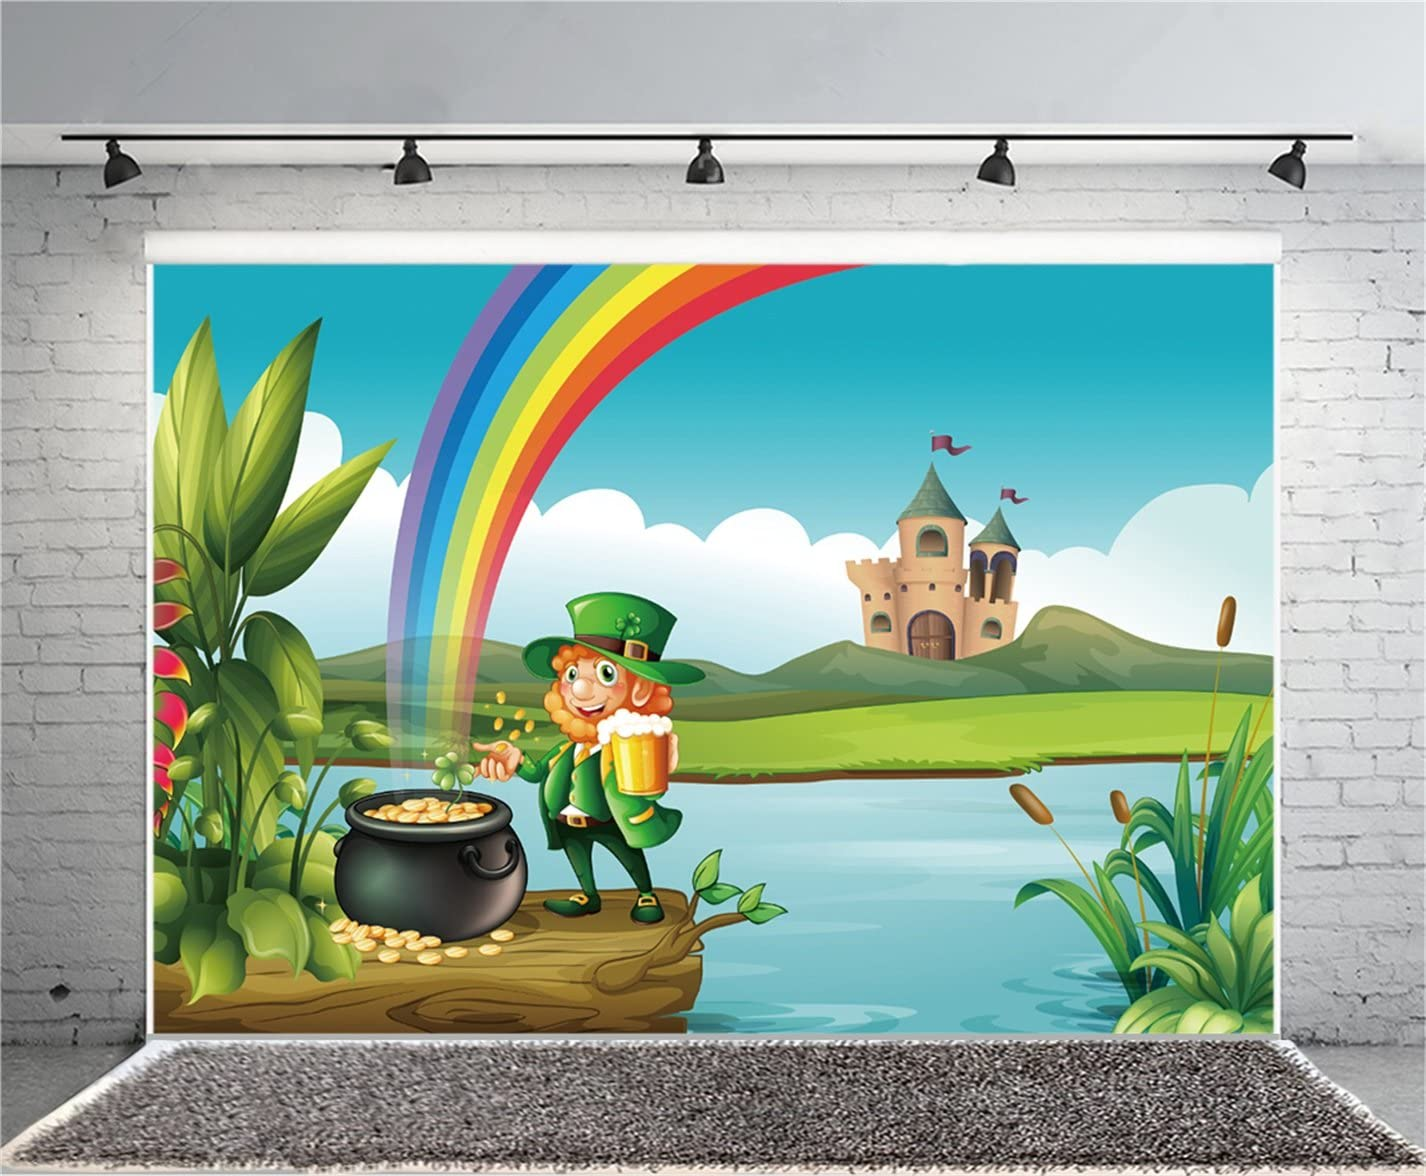 10x6.5ft Polyester Magical St.Patricks Day Photo Backdrops Dreamy Pot of Gold Coins Abstract Clover Bokeh Haloes Background Child Adult Portraits Shoot Community Activities Luck Greeting Card